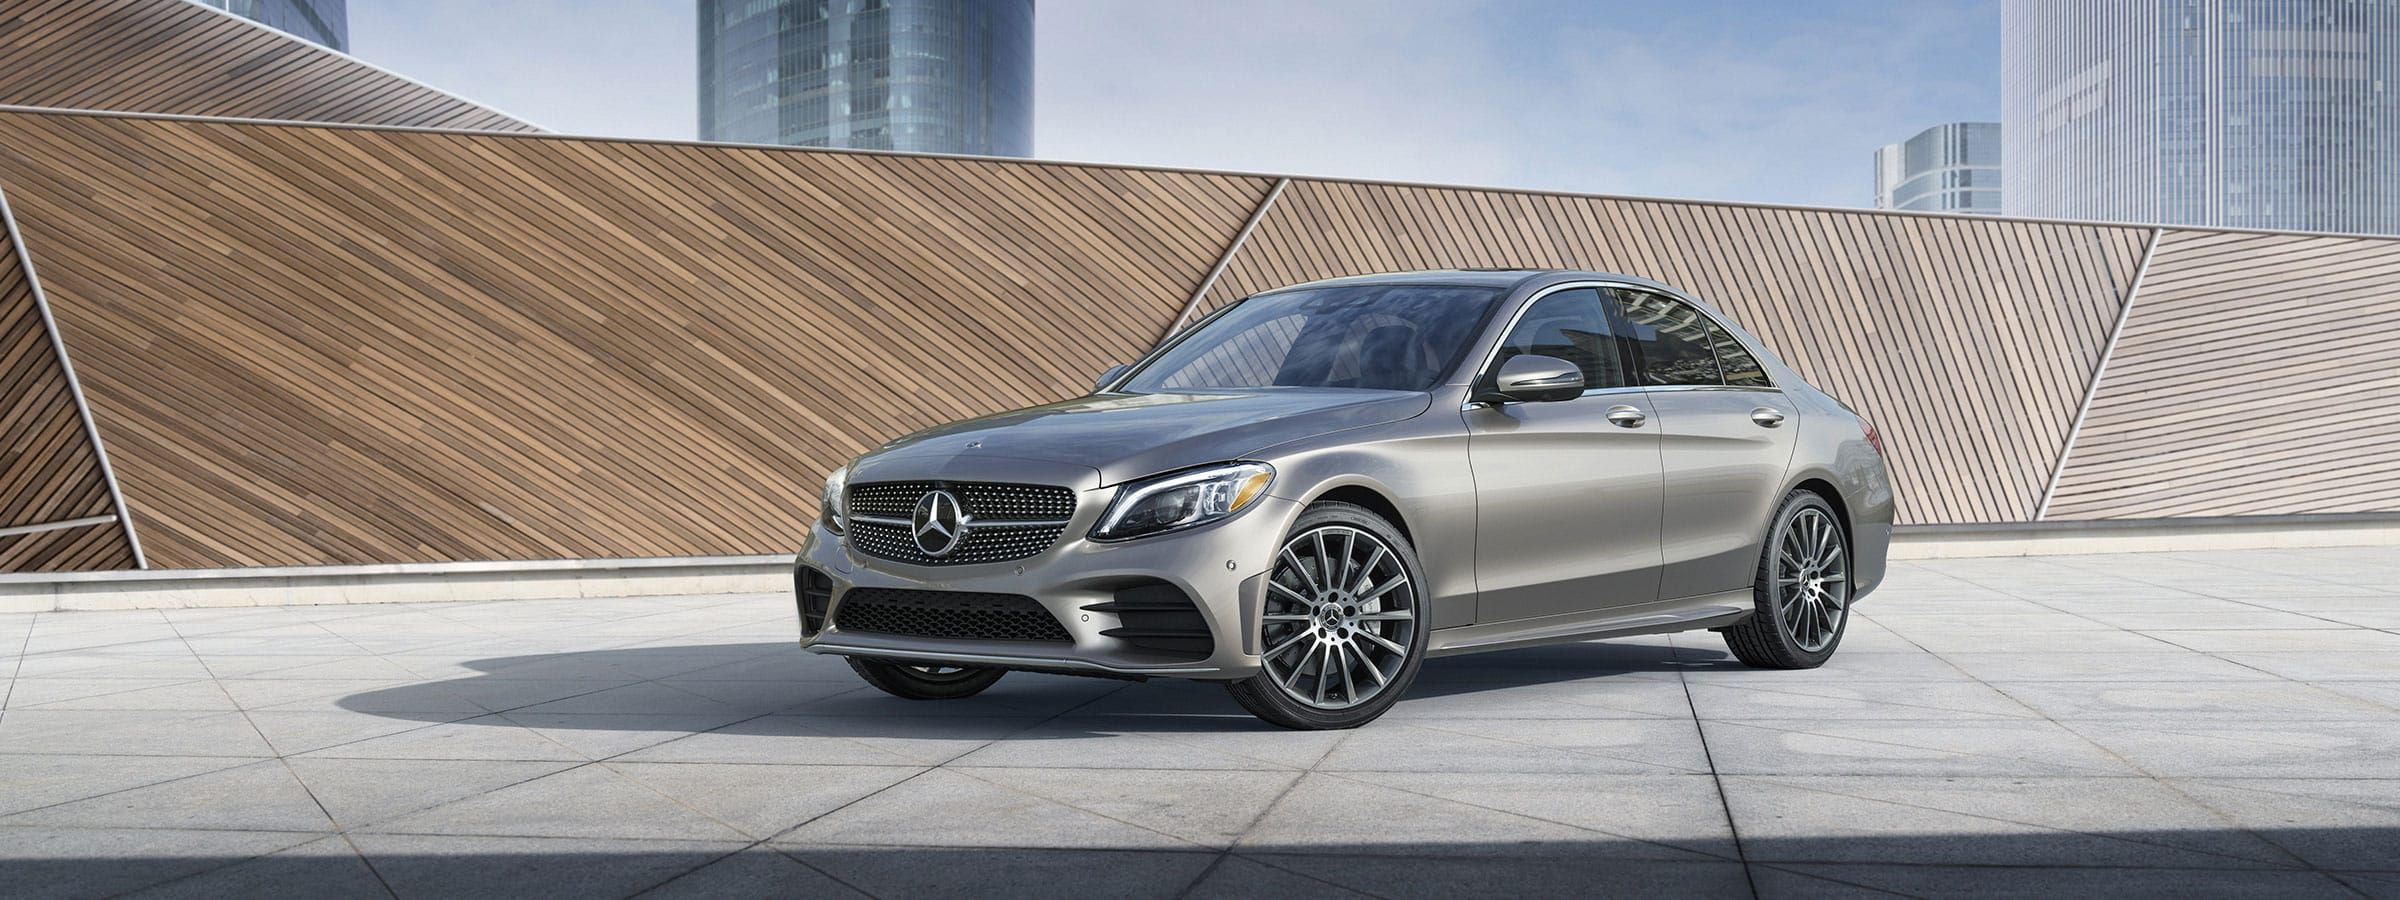 2019 C Class Sedan Mercedes Benz Usa With Images Mercedes